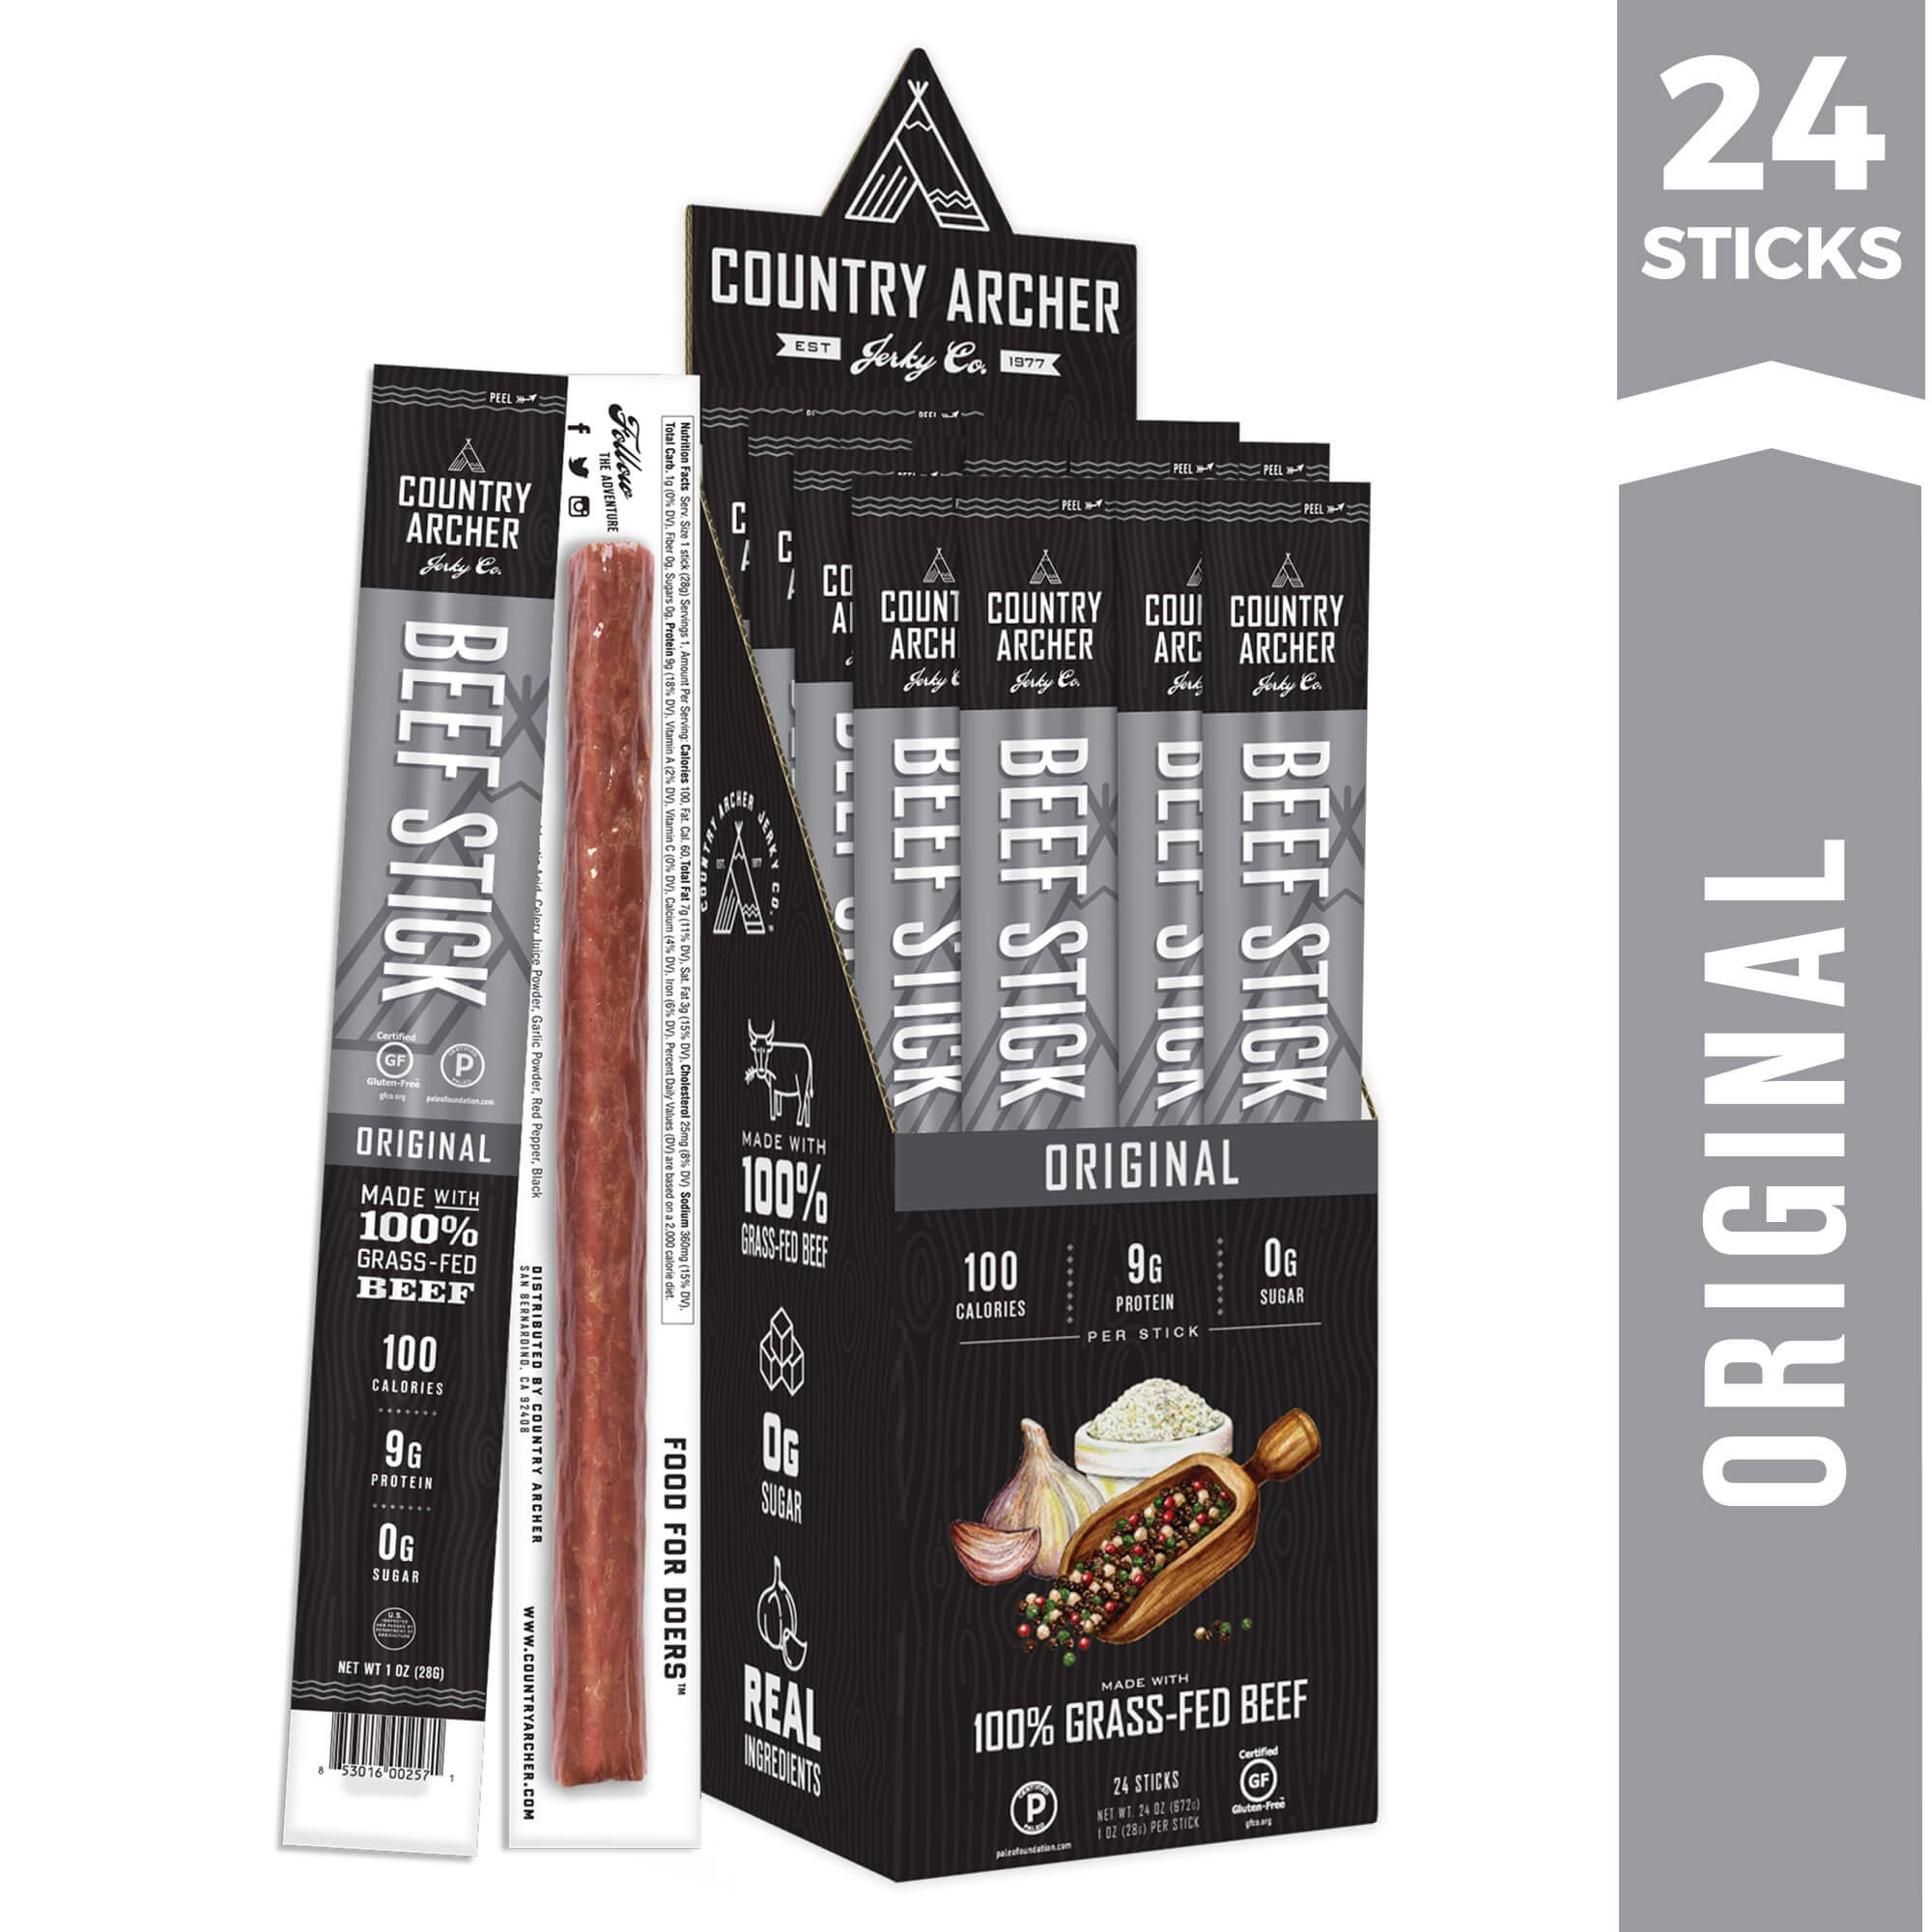 Original Beef Sticks by Country Archer | 100% Grass-Fed | Certified Keto, Paleo, Gluten Free | 24 Count